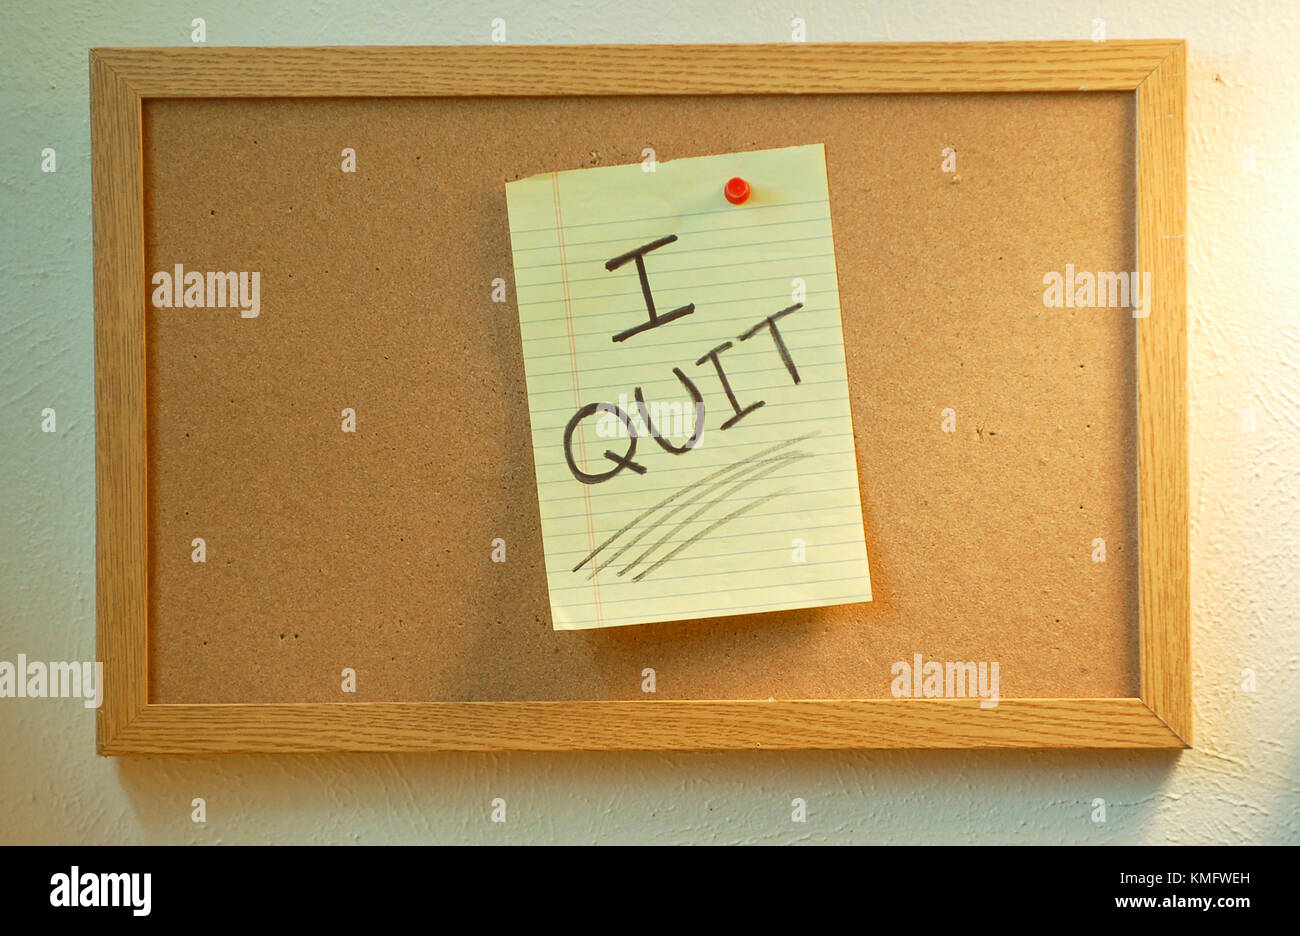 Bulletin Board with Handwritten Note Saying 'I Quit' - Stock Image